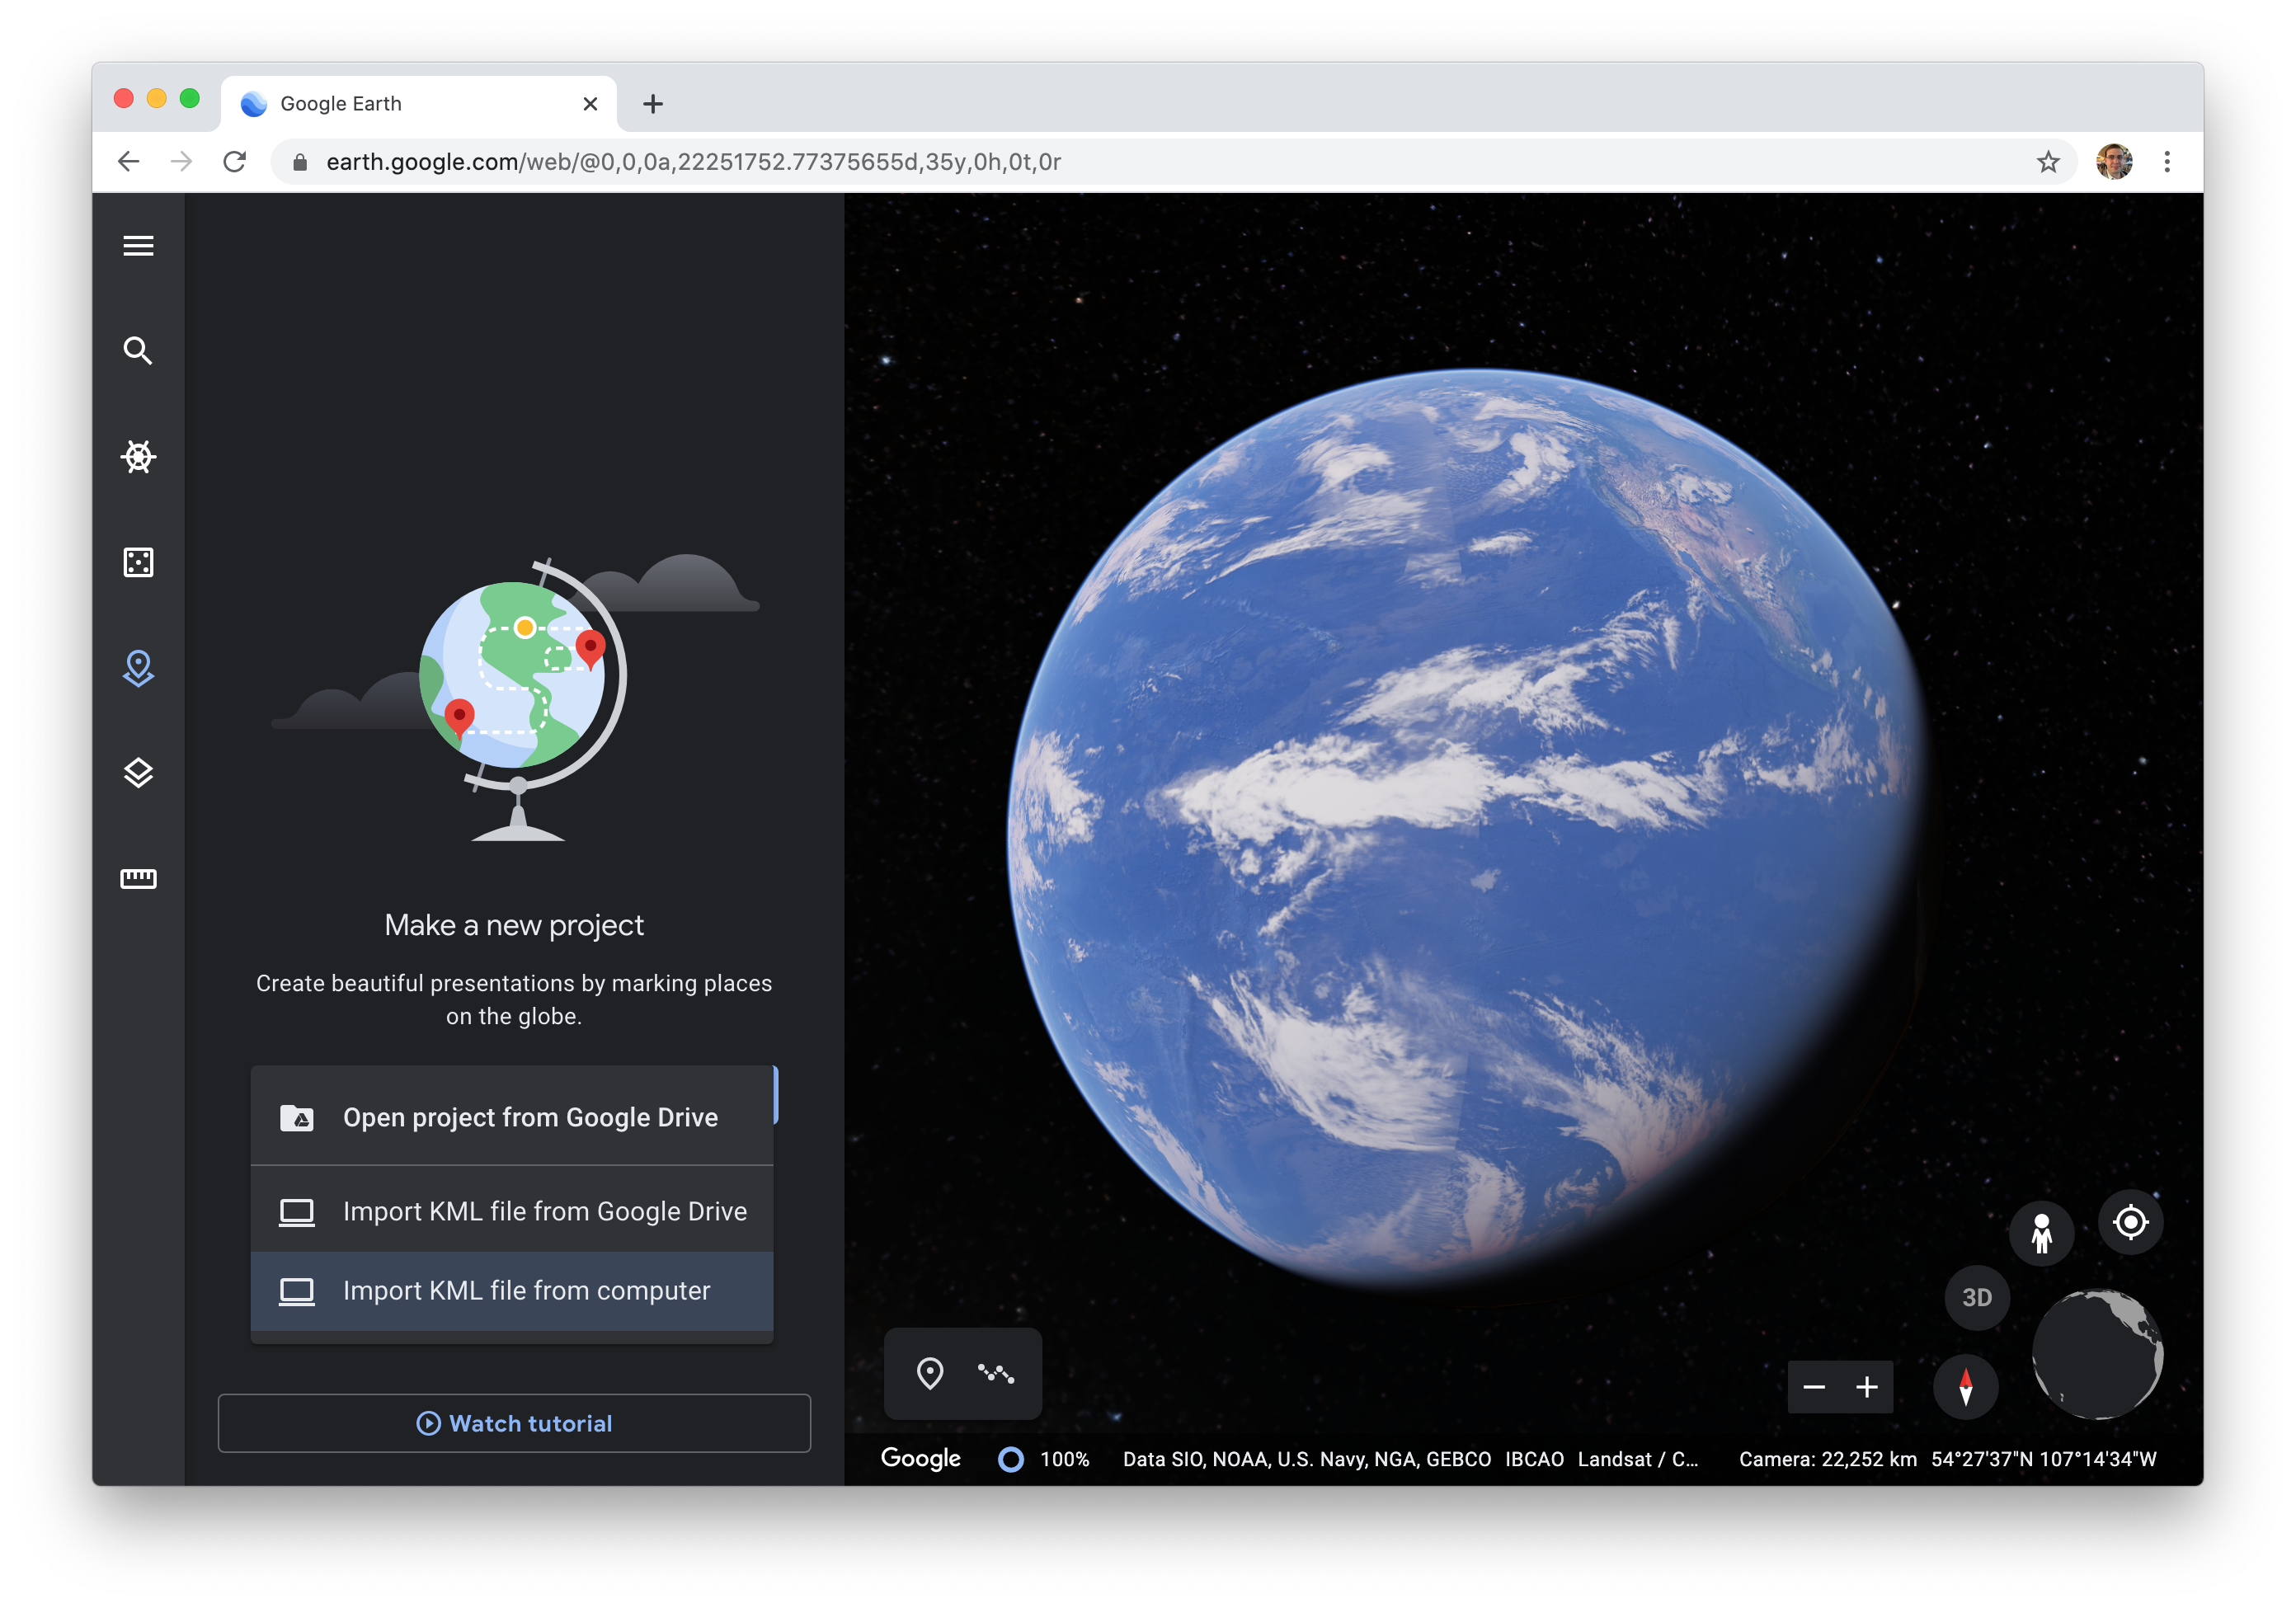 Google Earth Web Open Project menu.